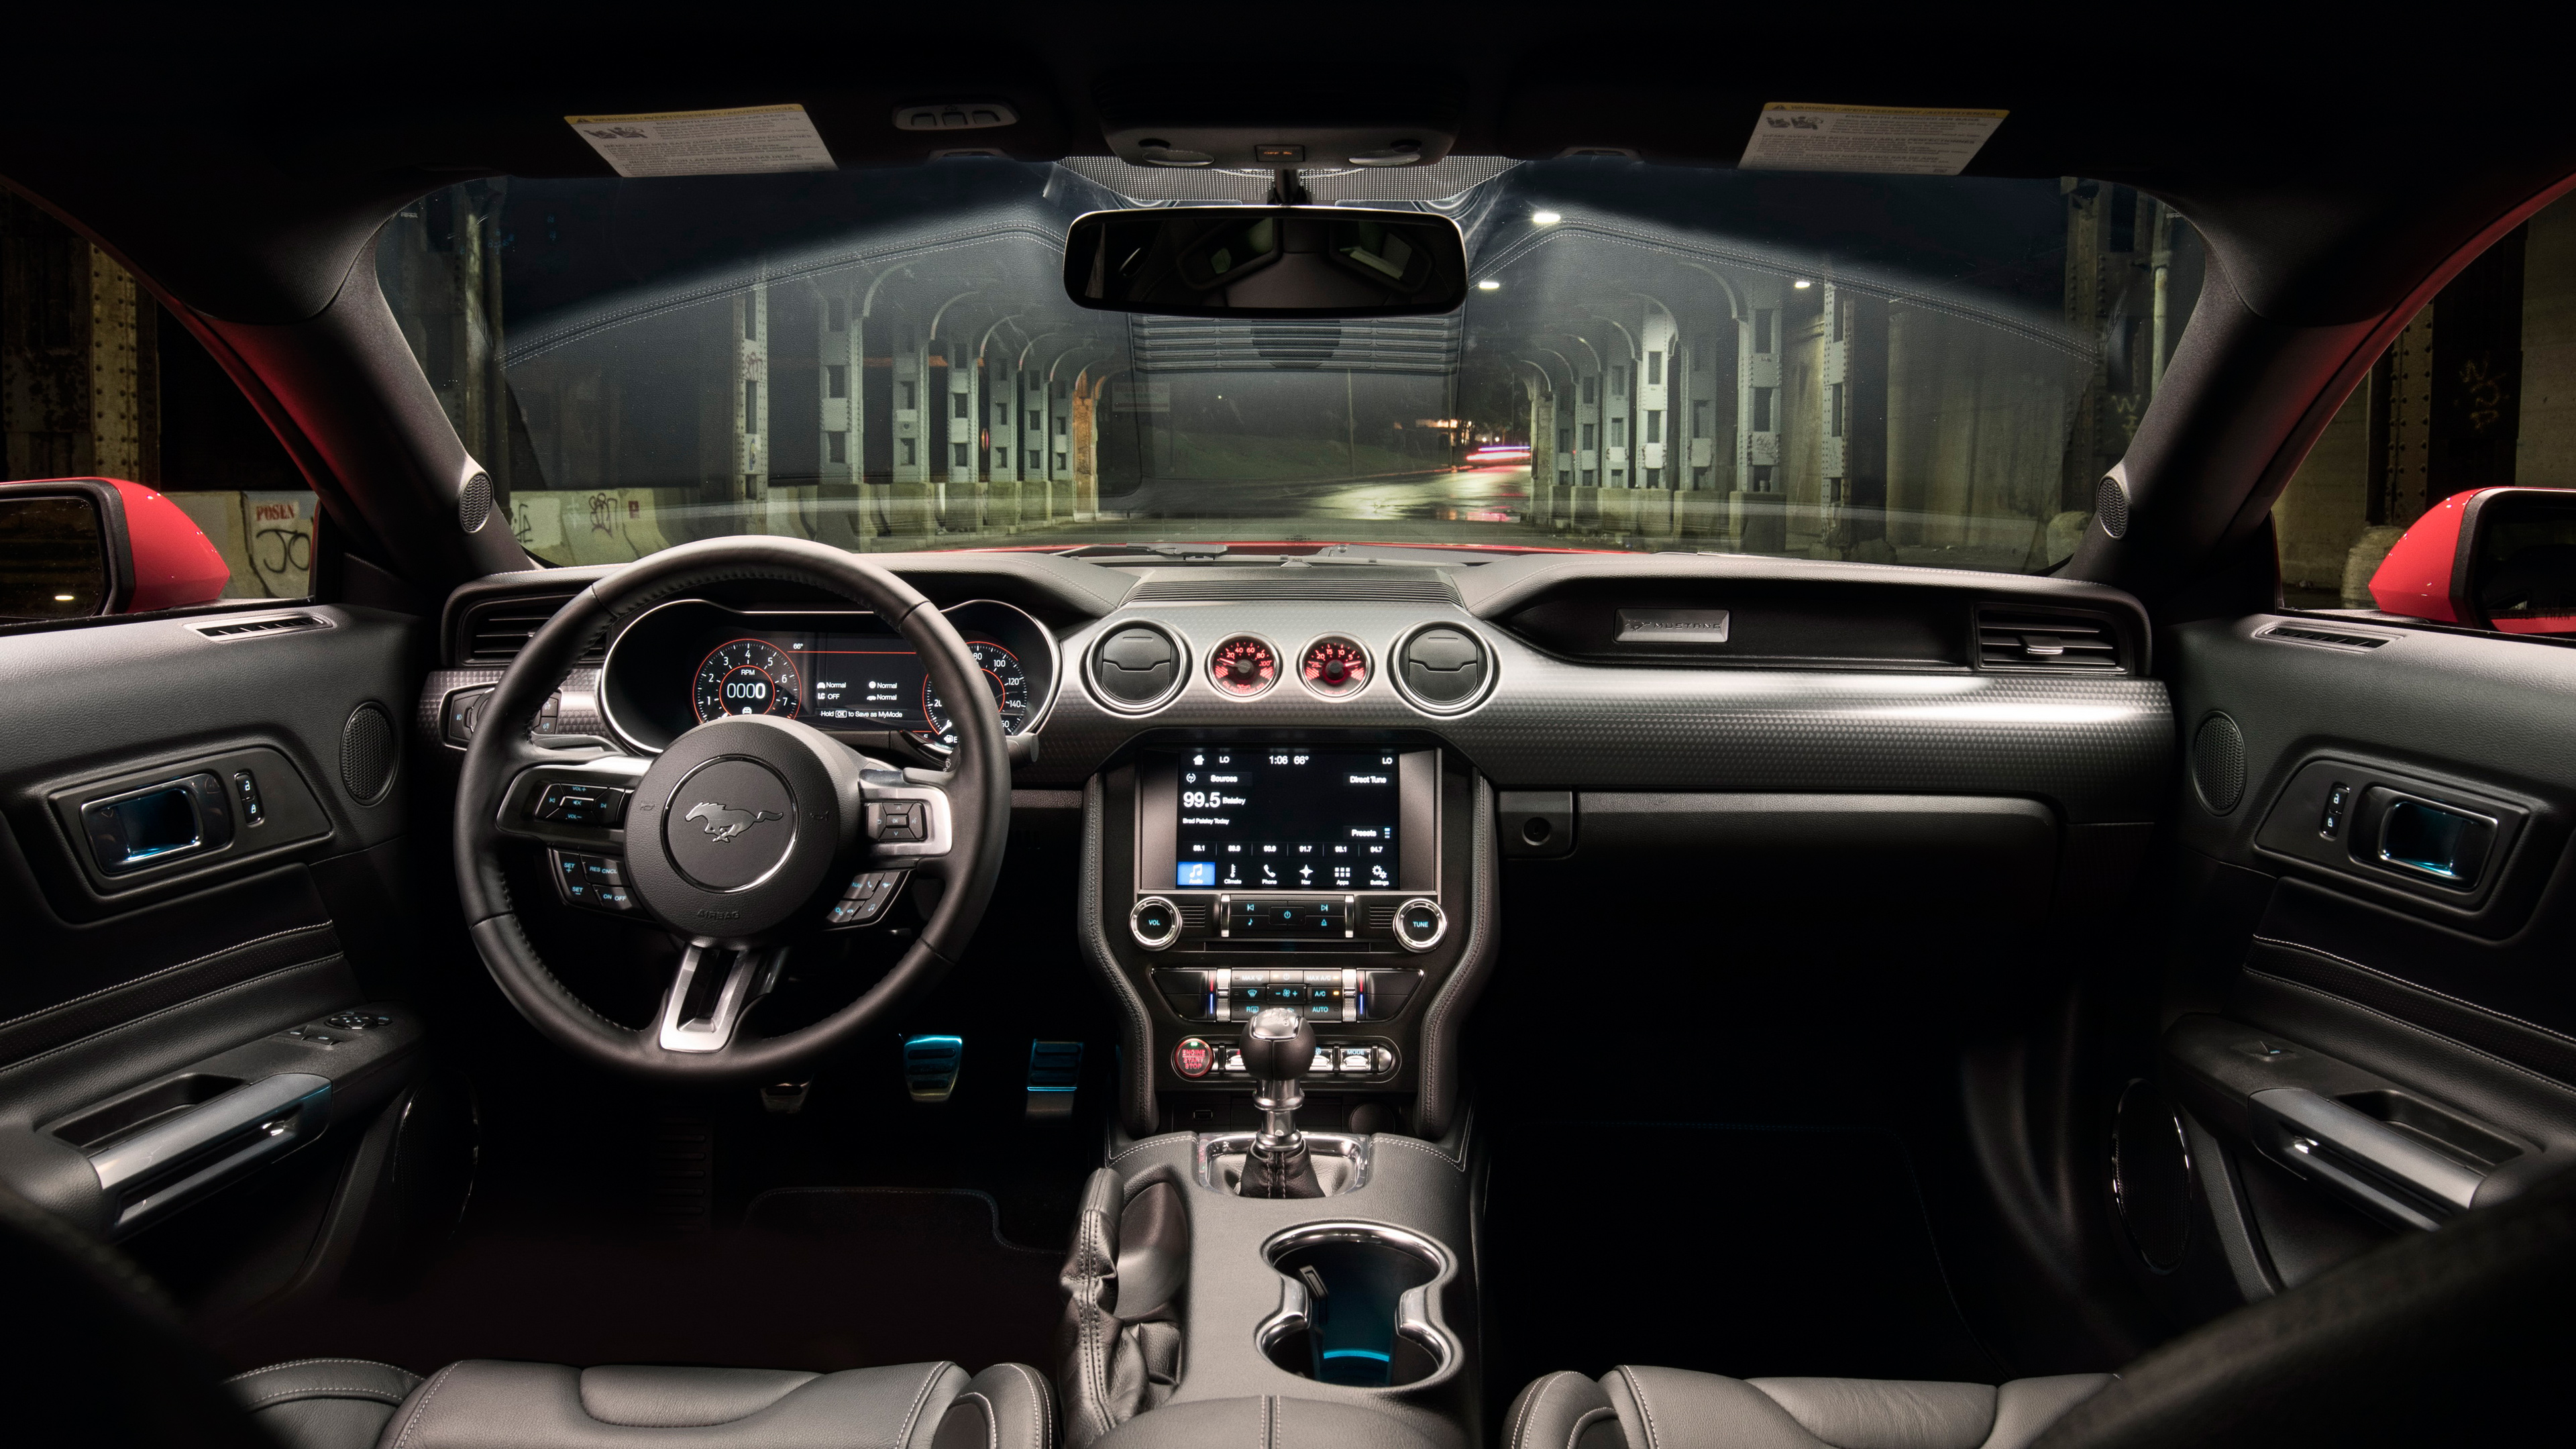 2018 Ford Mustang GT Level 2 Performance Pack 4K Interior Wallpaper | HD Car Wallpapers | ID #8917